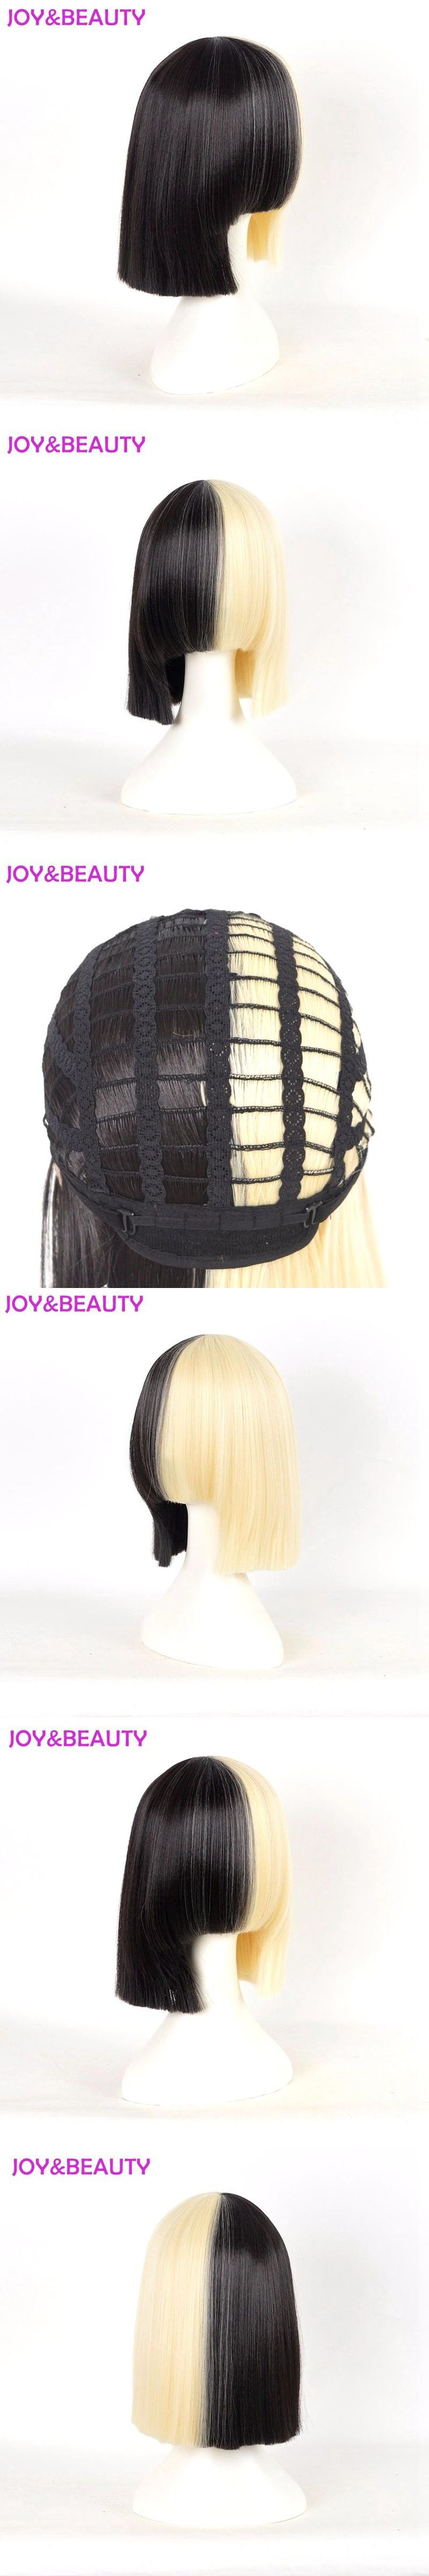 JOY&BEAUTY Hair Long bang Sia wig Short Bob Wig Women's Half Blonde and Black Mix Hair Short Straight Cosplay Wig 12inch long